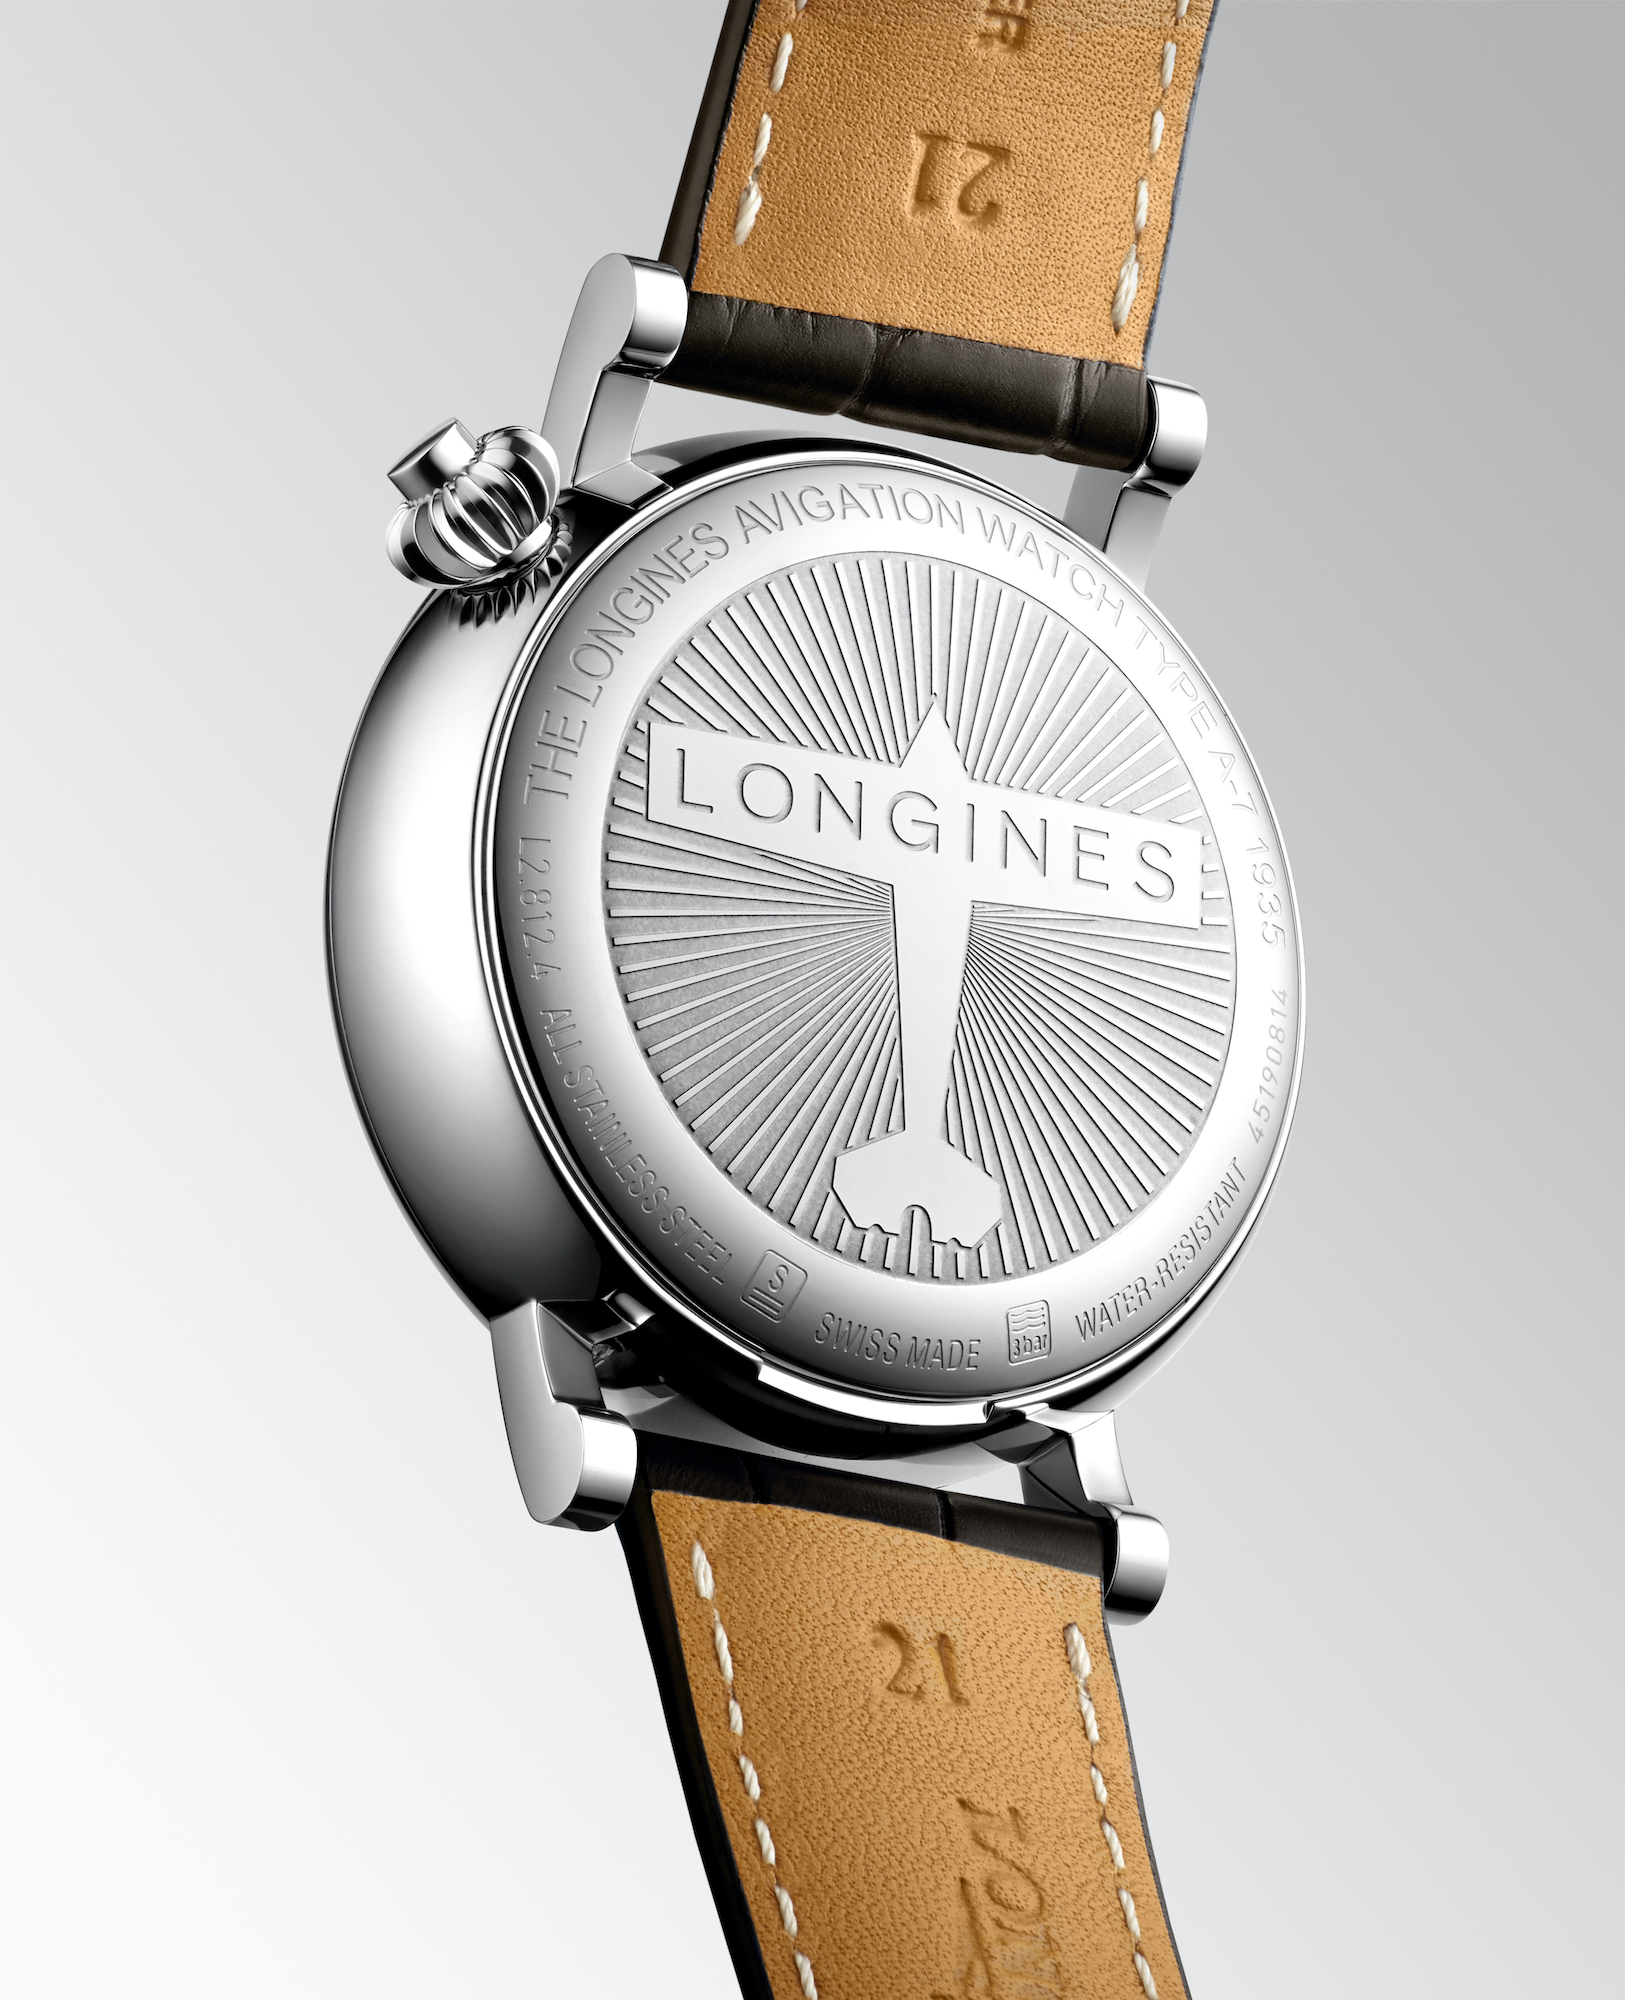 The Longines Avigation Watch A-7 1935 trasera